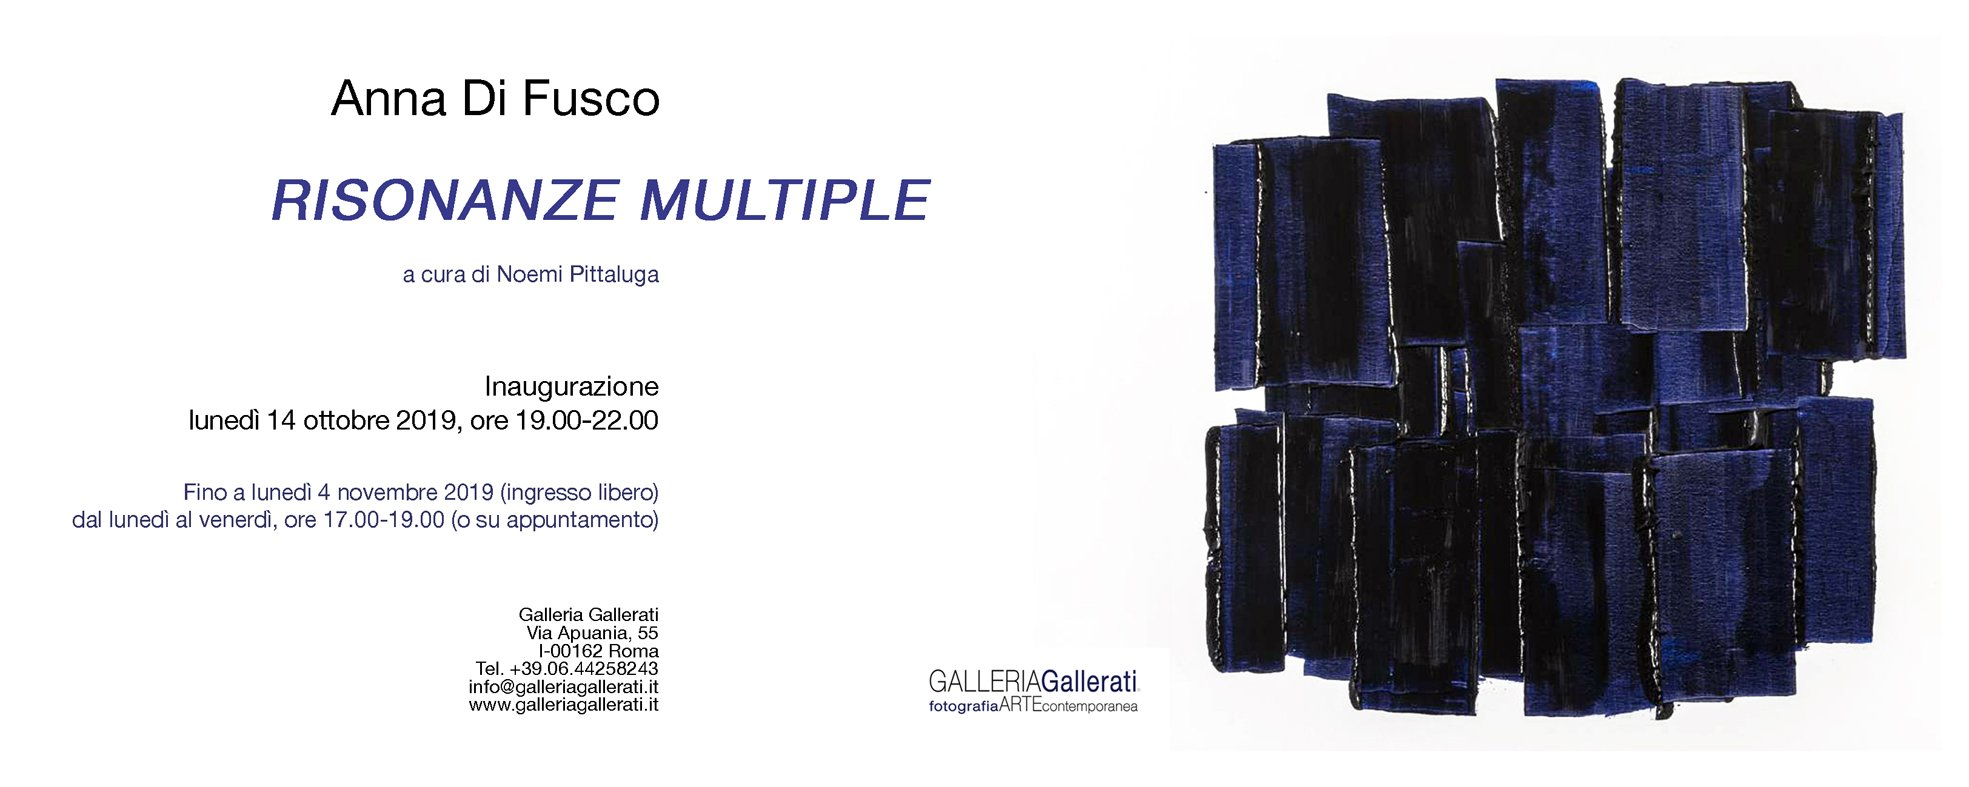 Anna Di Fusco, Risonanze multiple